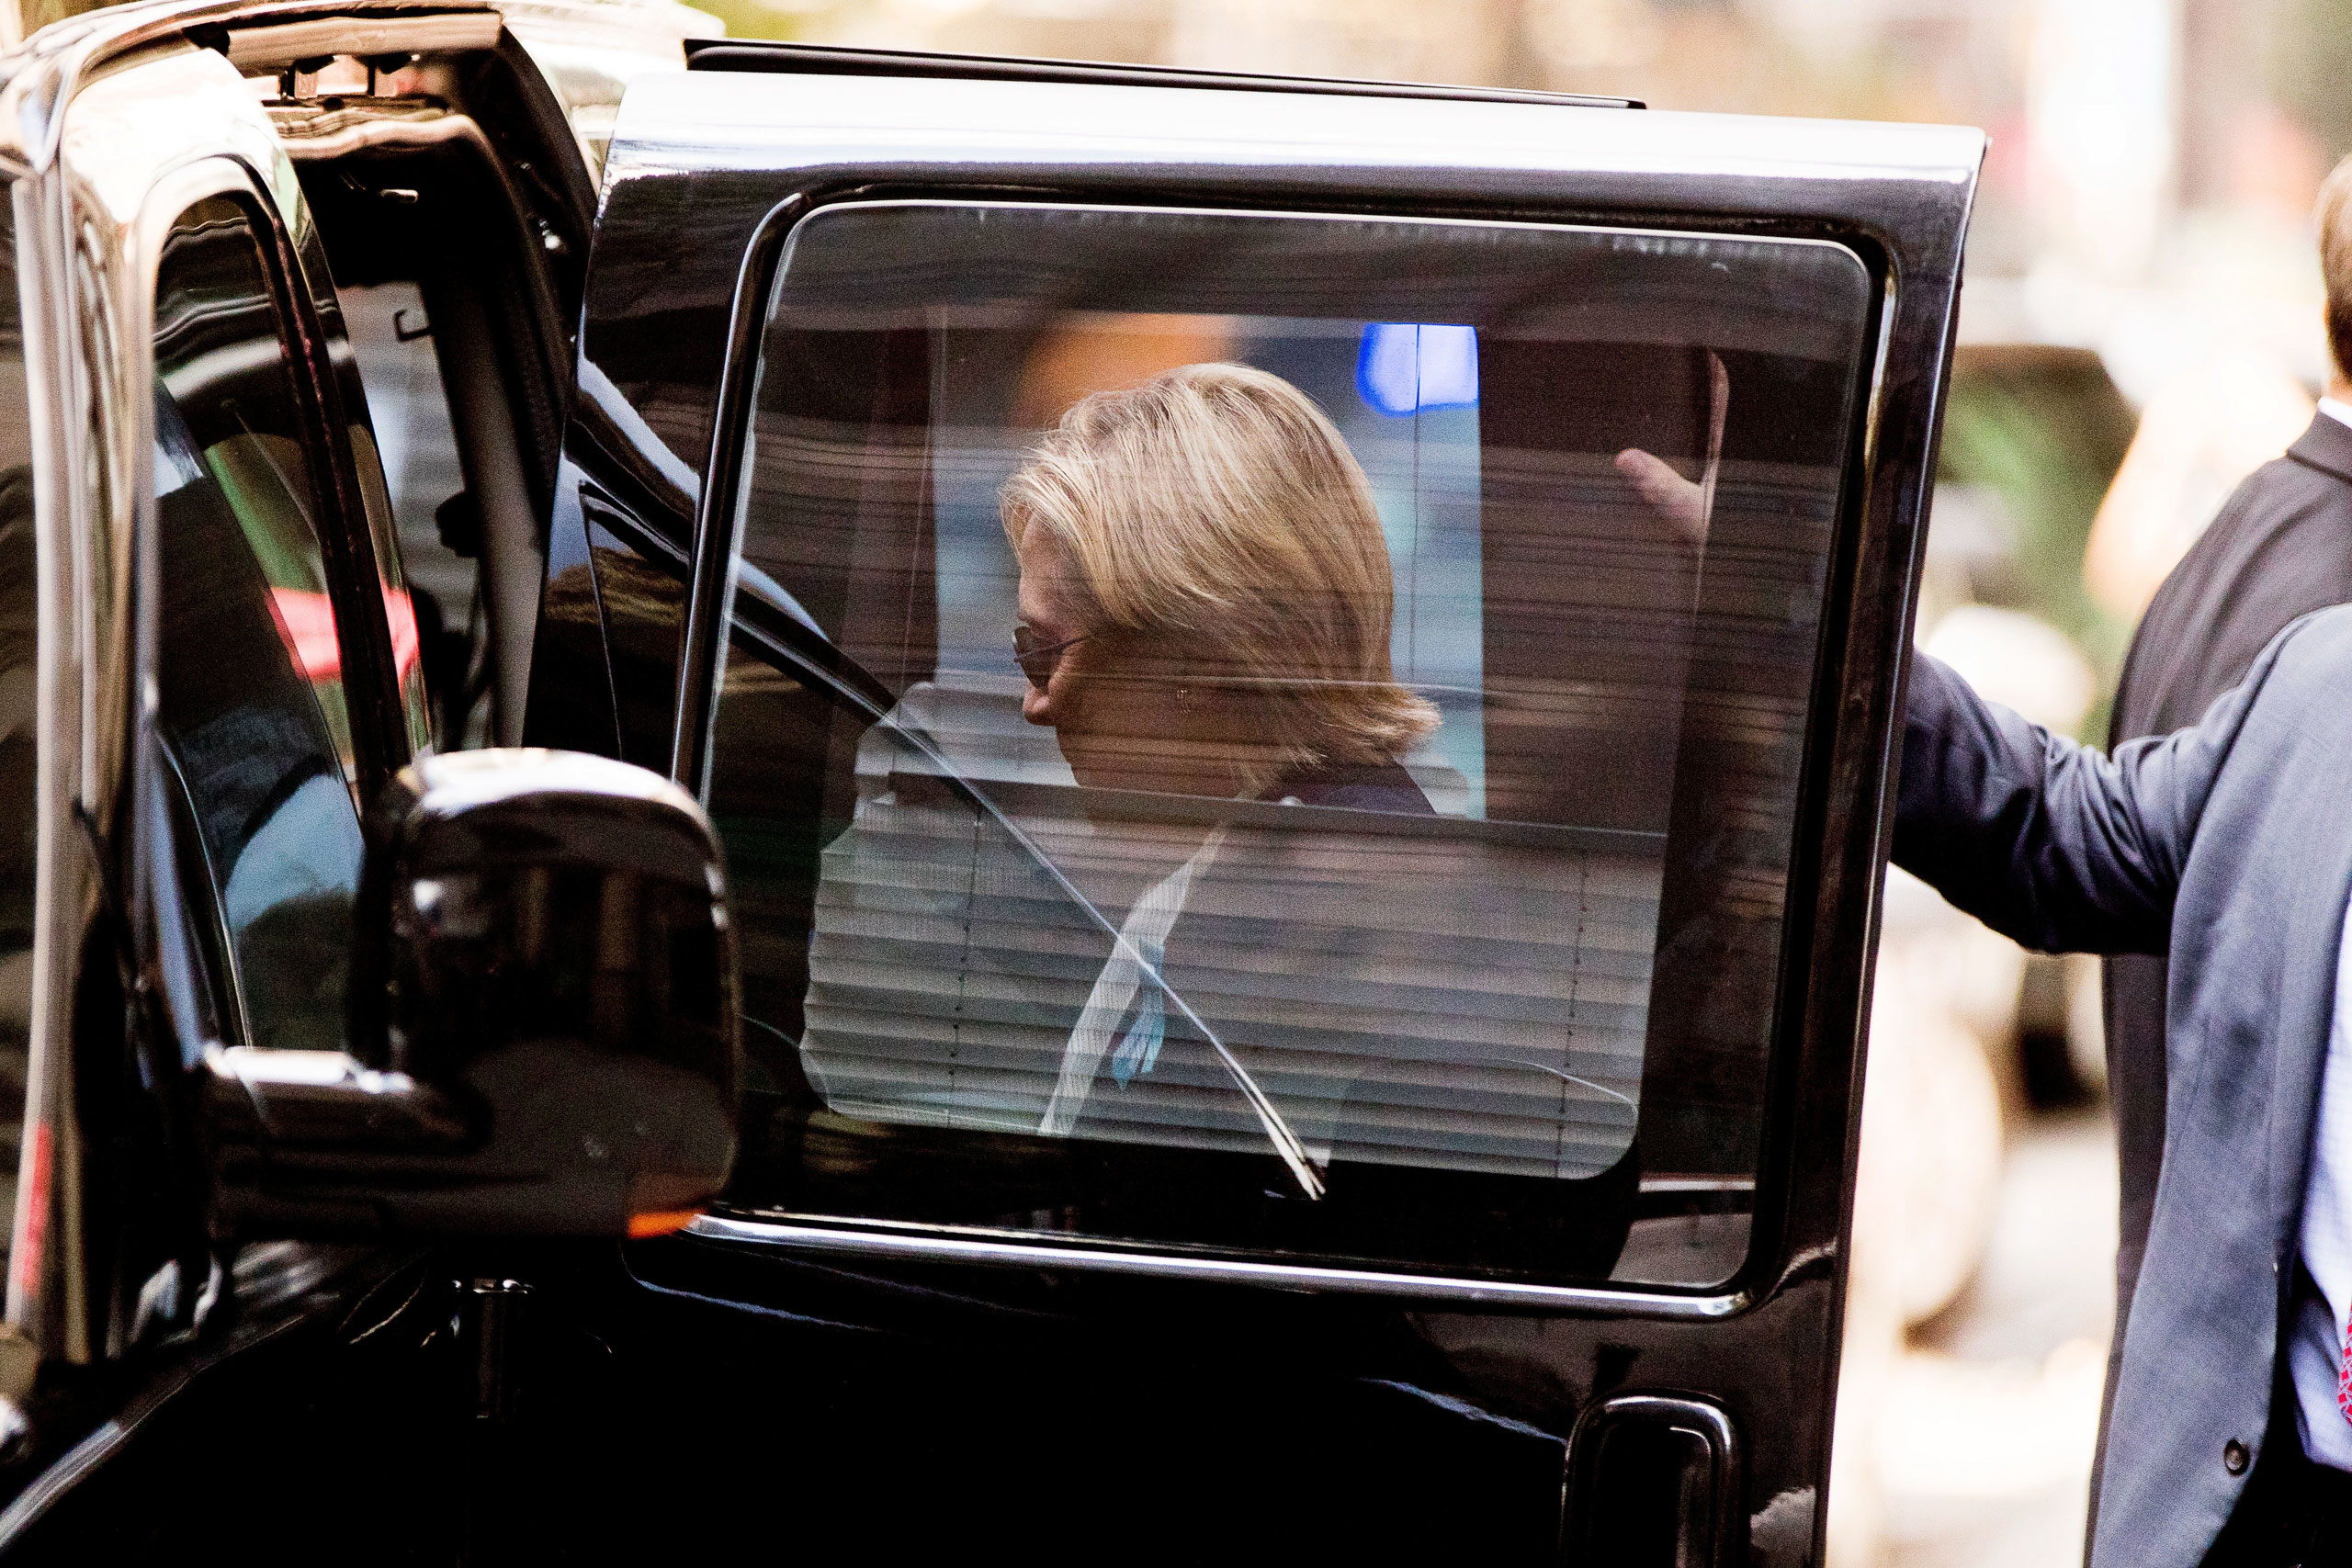 Clinton returns to her motorcade after briefly recuperating at her daughter Chelsea's apartment